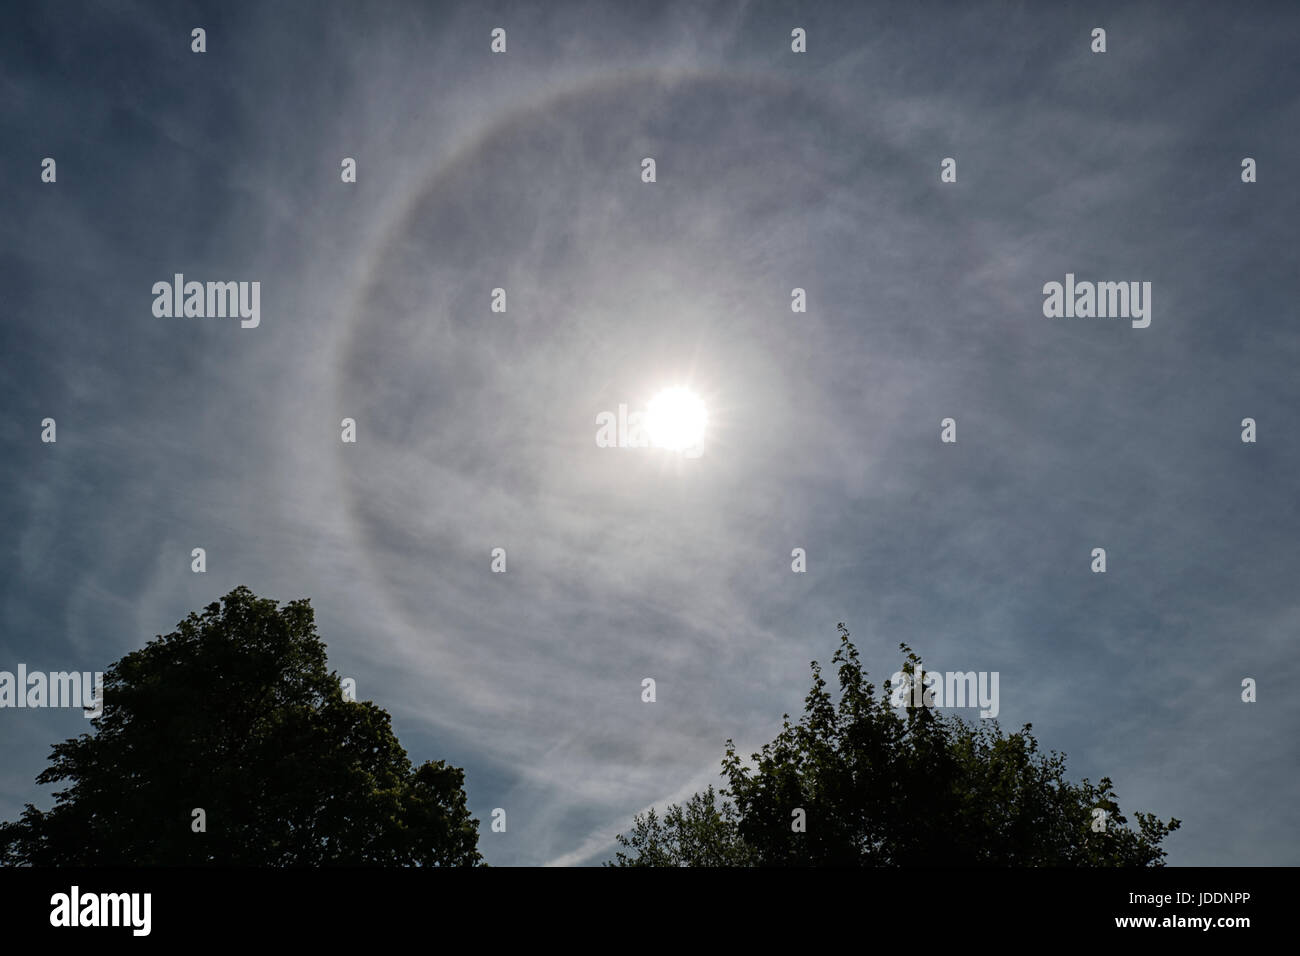 Otley, Leeds, UK. 19th June, 2017. Weather Sun Halo seen in the sky Monday 19-06-2017, 14.56 pm. Credit: Les Wagstaff/Alamy - Stock Image